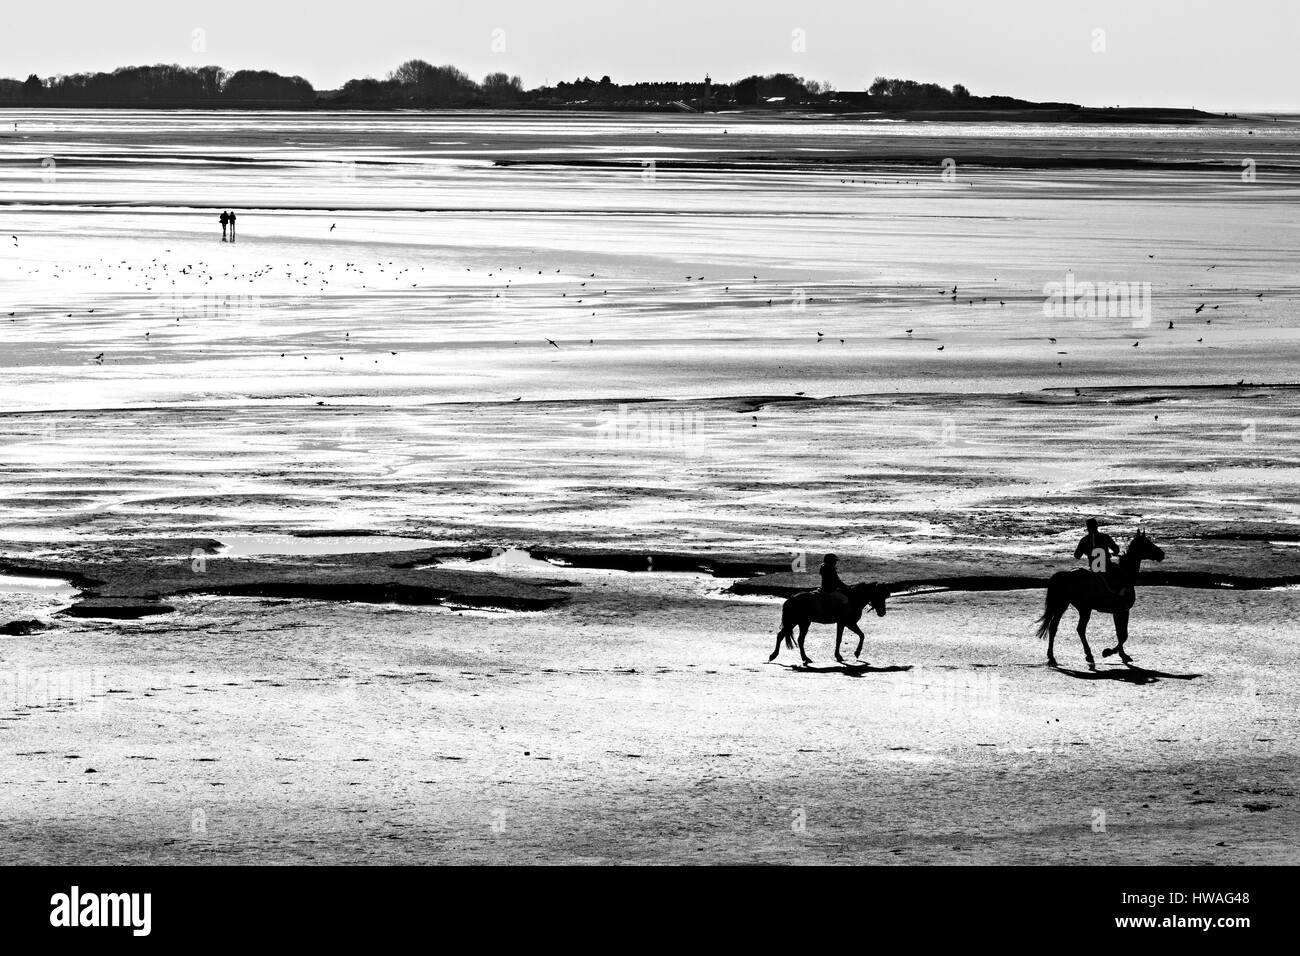 France, Somme, Baie de Somme, le Crotoy, Riders on the beach at low tide - Stock Image